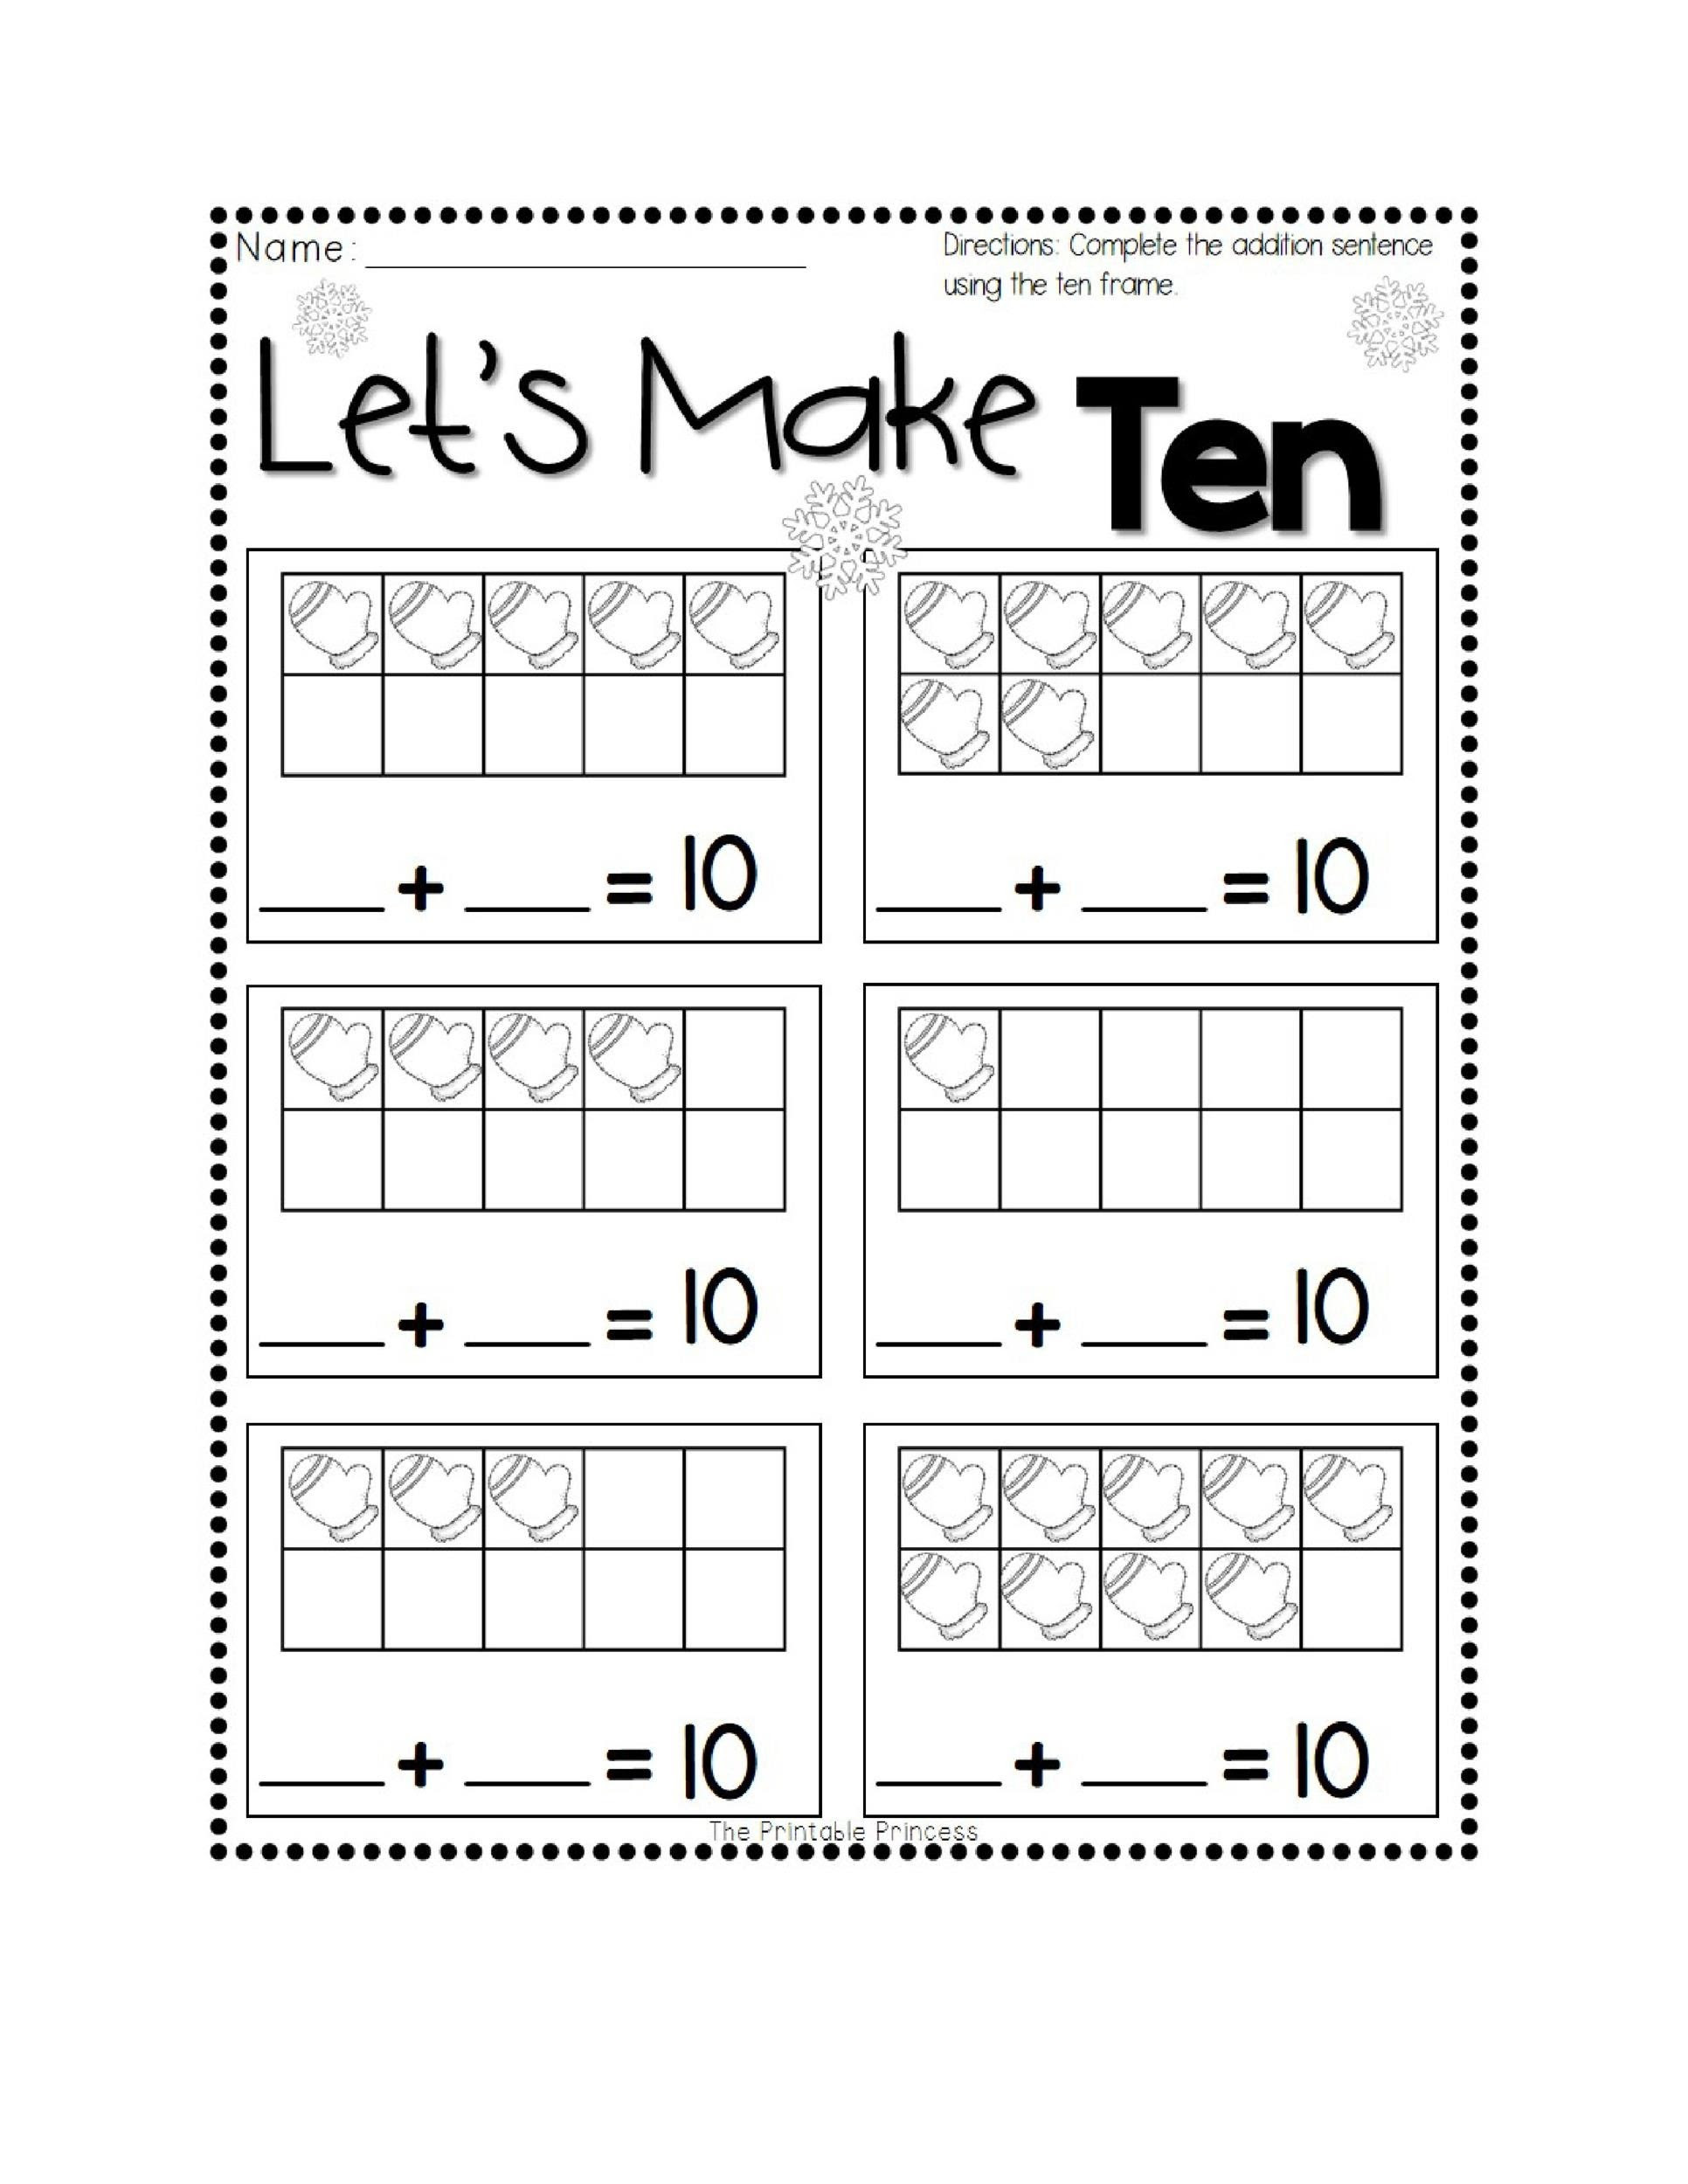 36 Printable Ten Frame Templates Free Template Lab